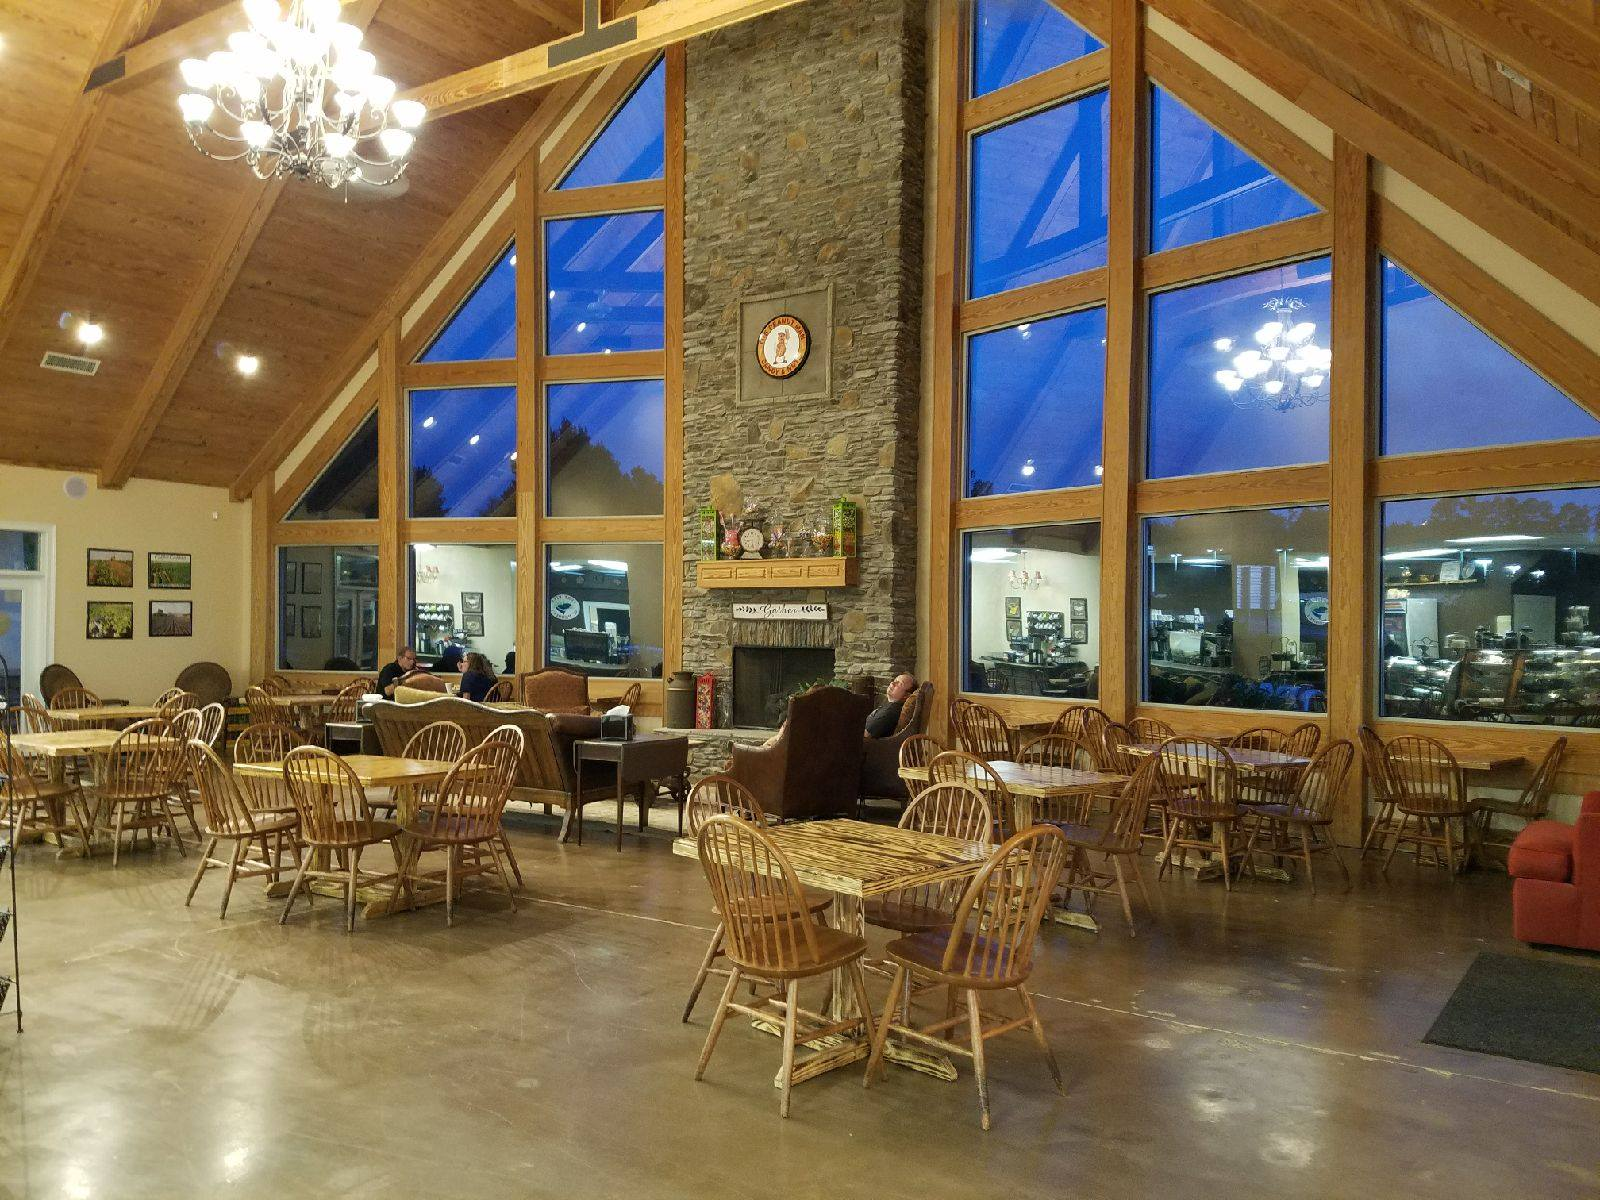 The Peanut Man dining area. Wood chairs and tables in front of large windows, under high ceilings